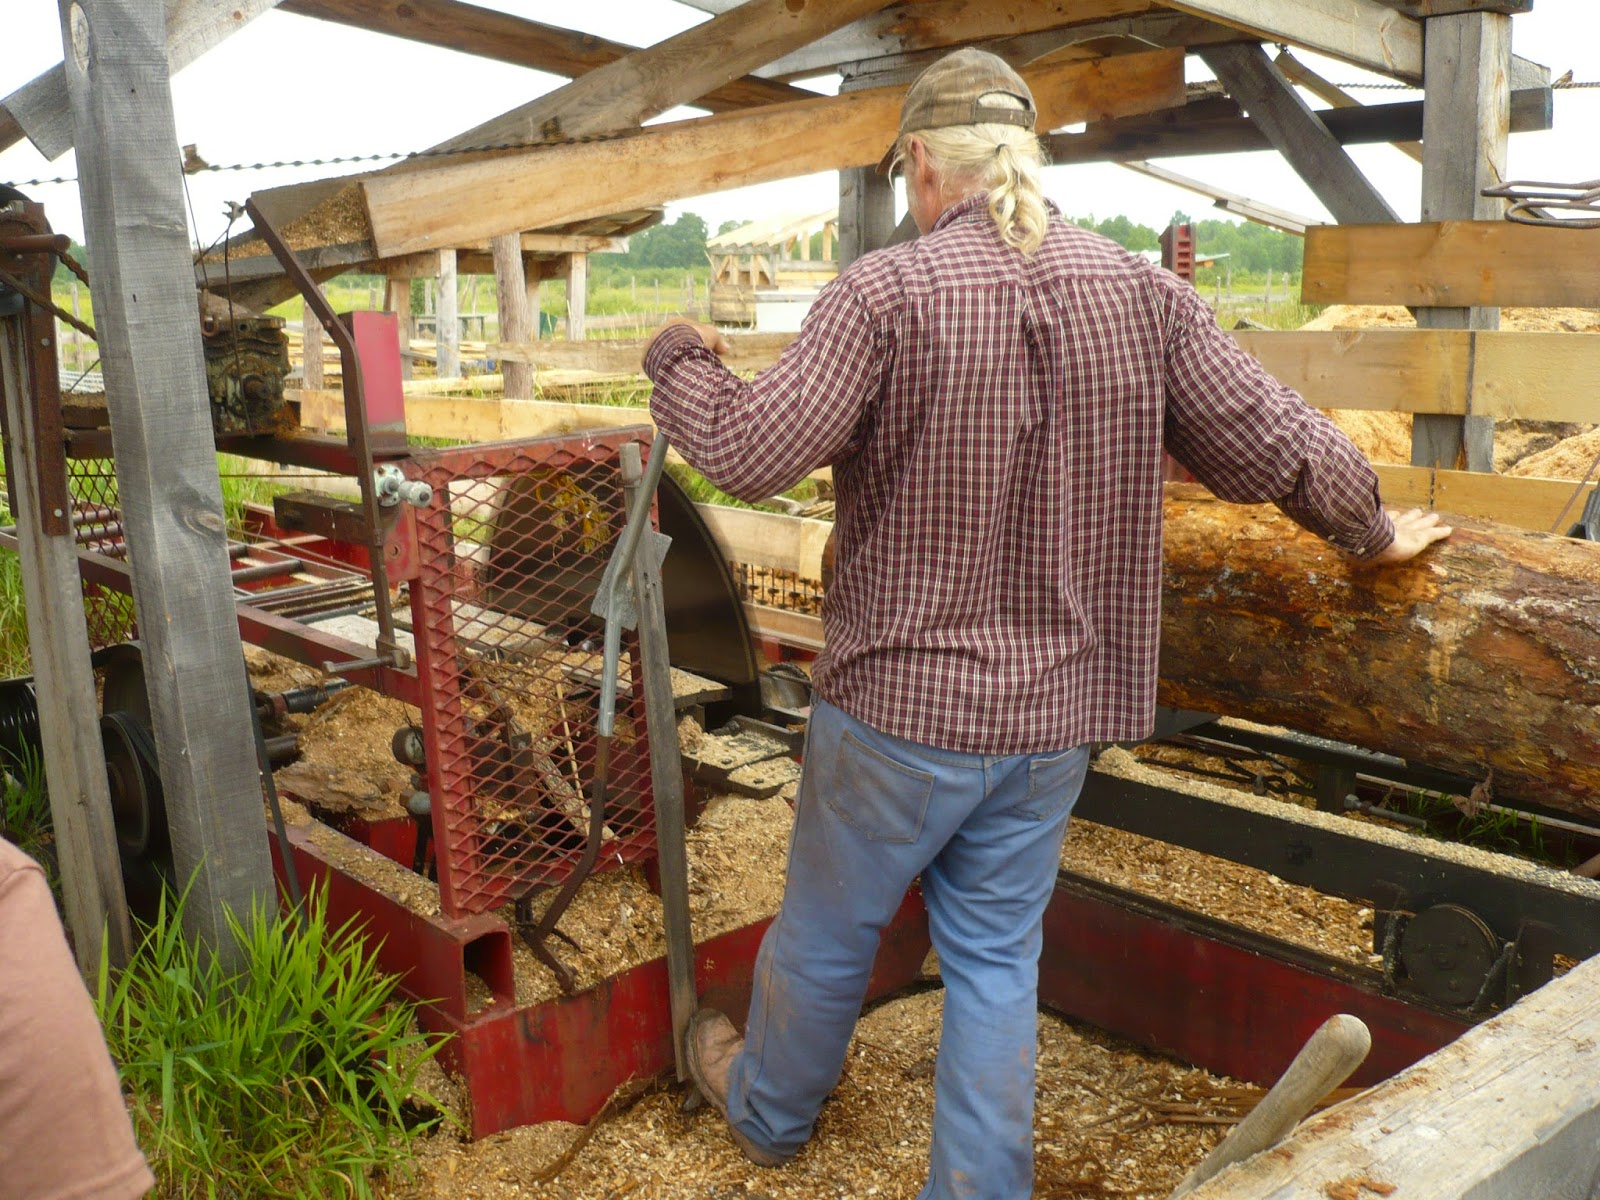 Mel Seeger milling logs at his Matchwood Sawmill. Mel built his own sawmill from an old Mac truck! He is an expert timber-framer and built our beautiful studio barn at VCAC.